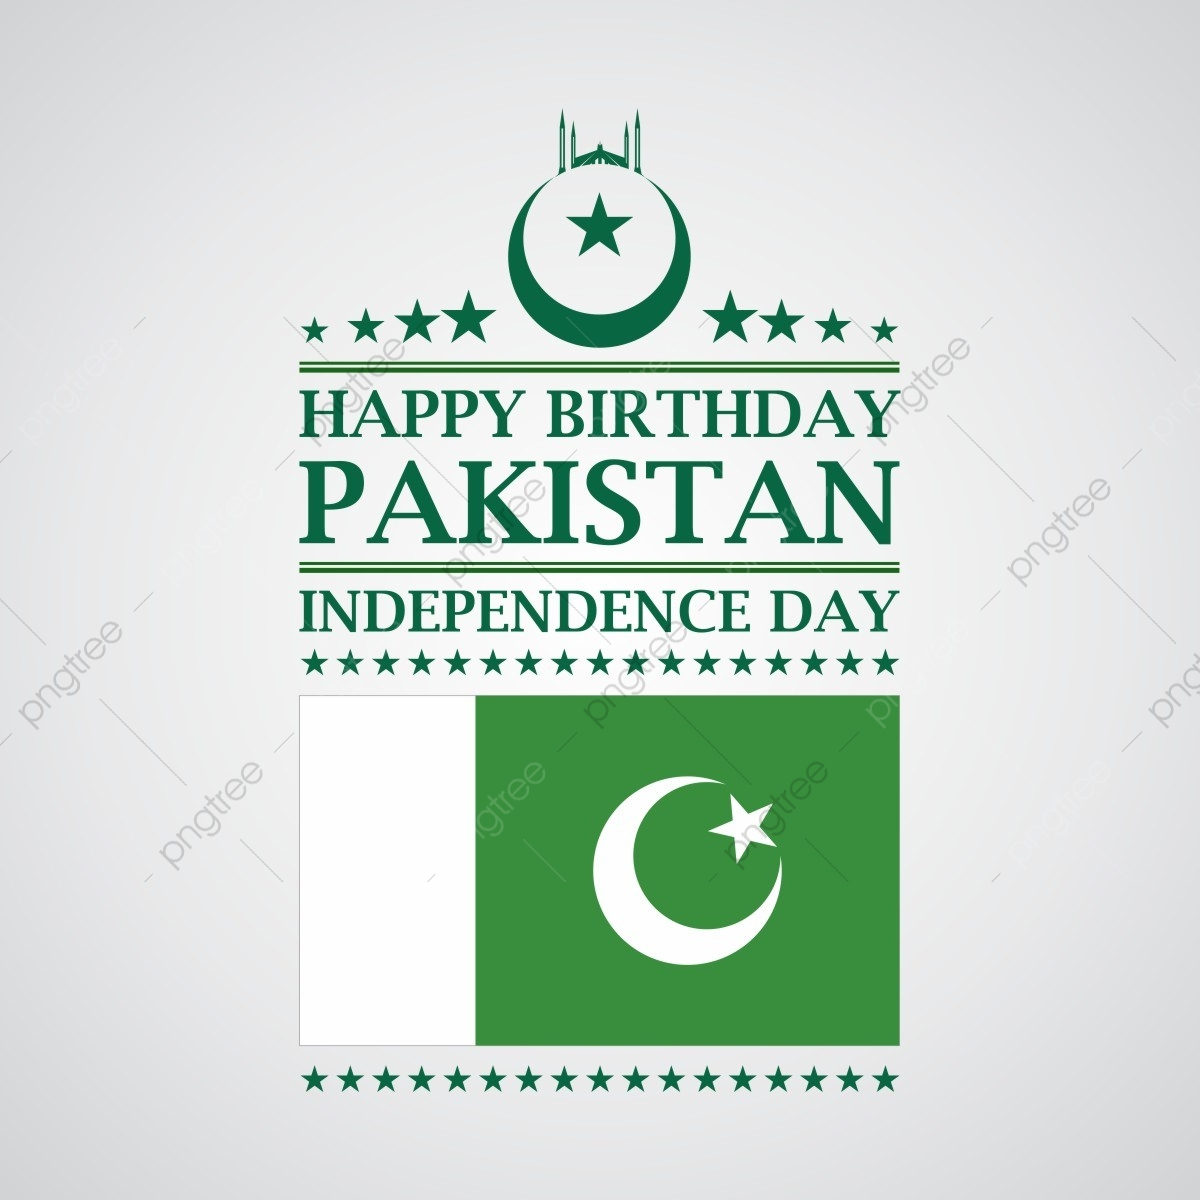 Pakistan 14 August Happy Independence Day Pakistani Flag Pakistan Independence Day Flag Of Pakistan Png And Vector With Transparent Background For Free Download